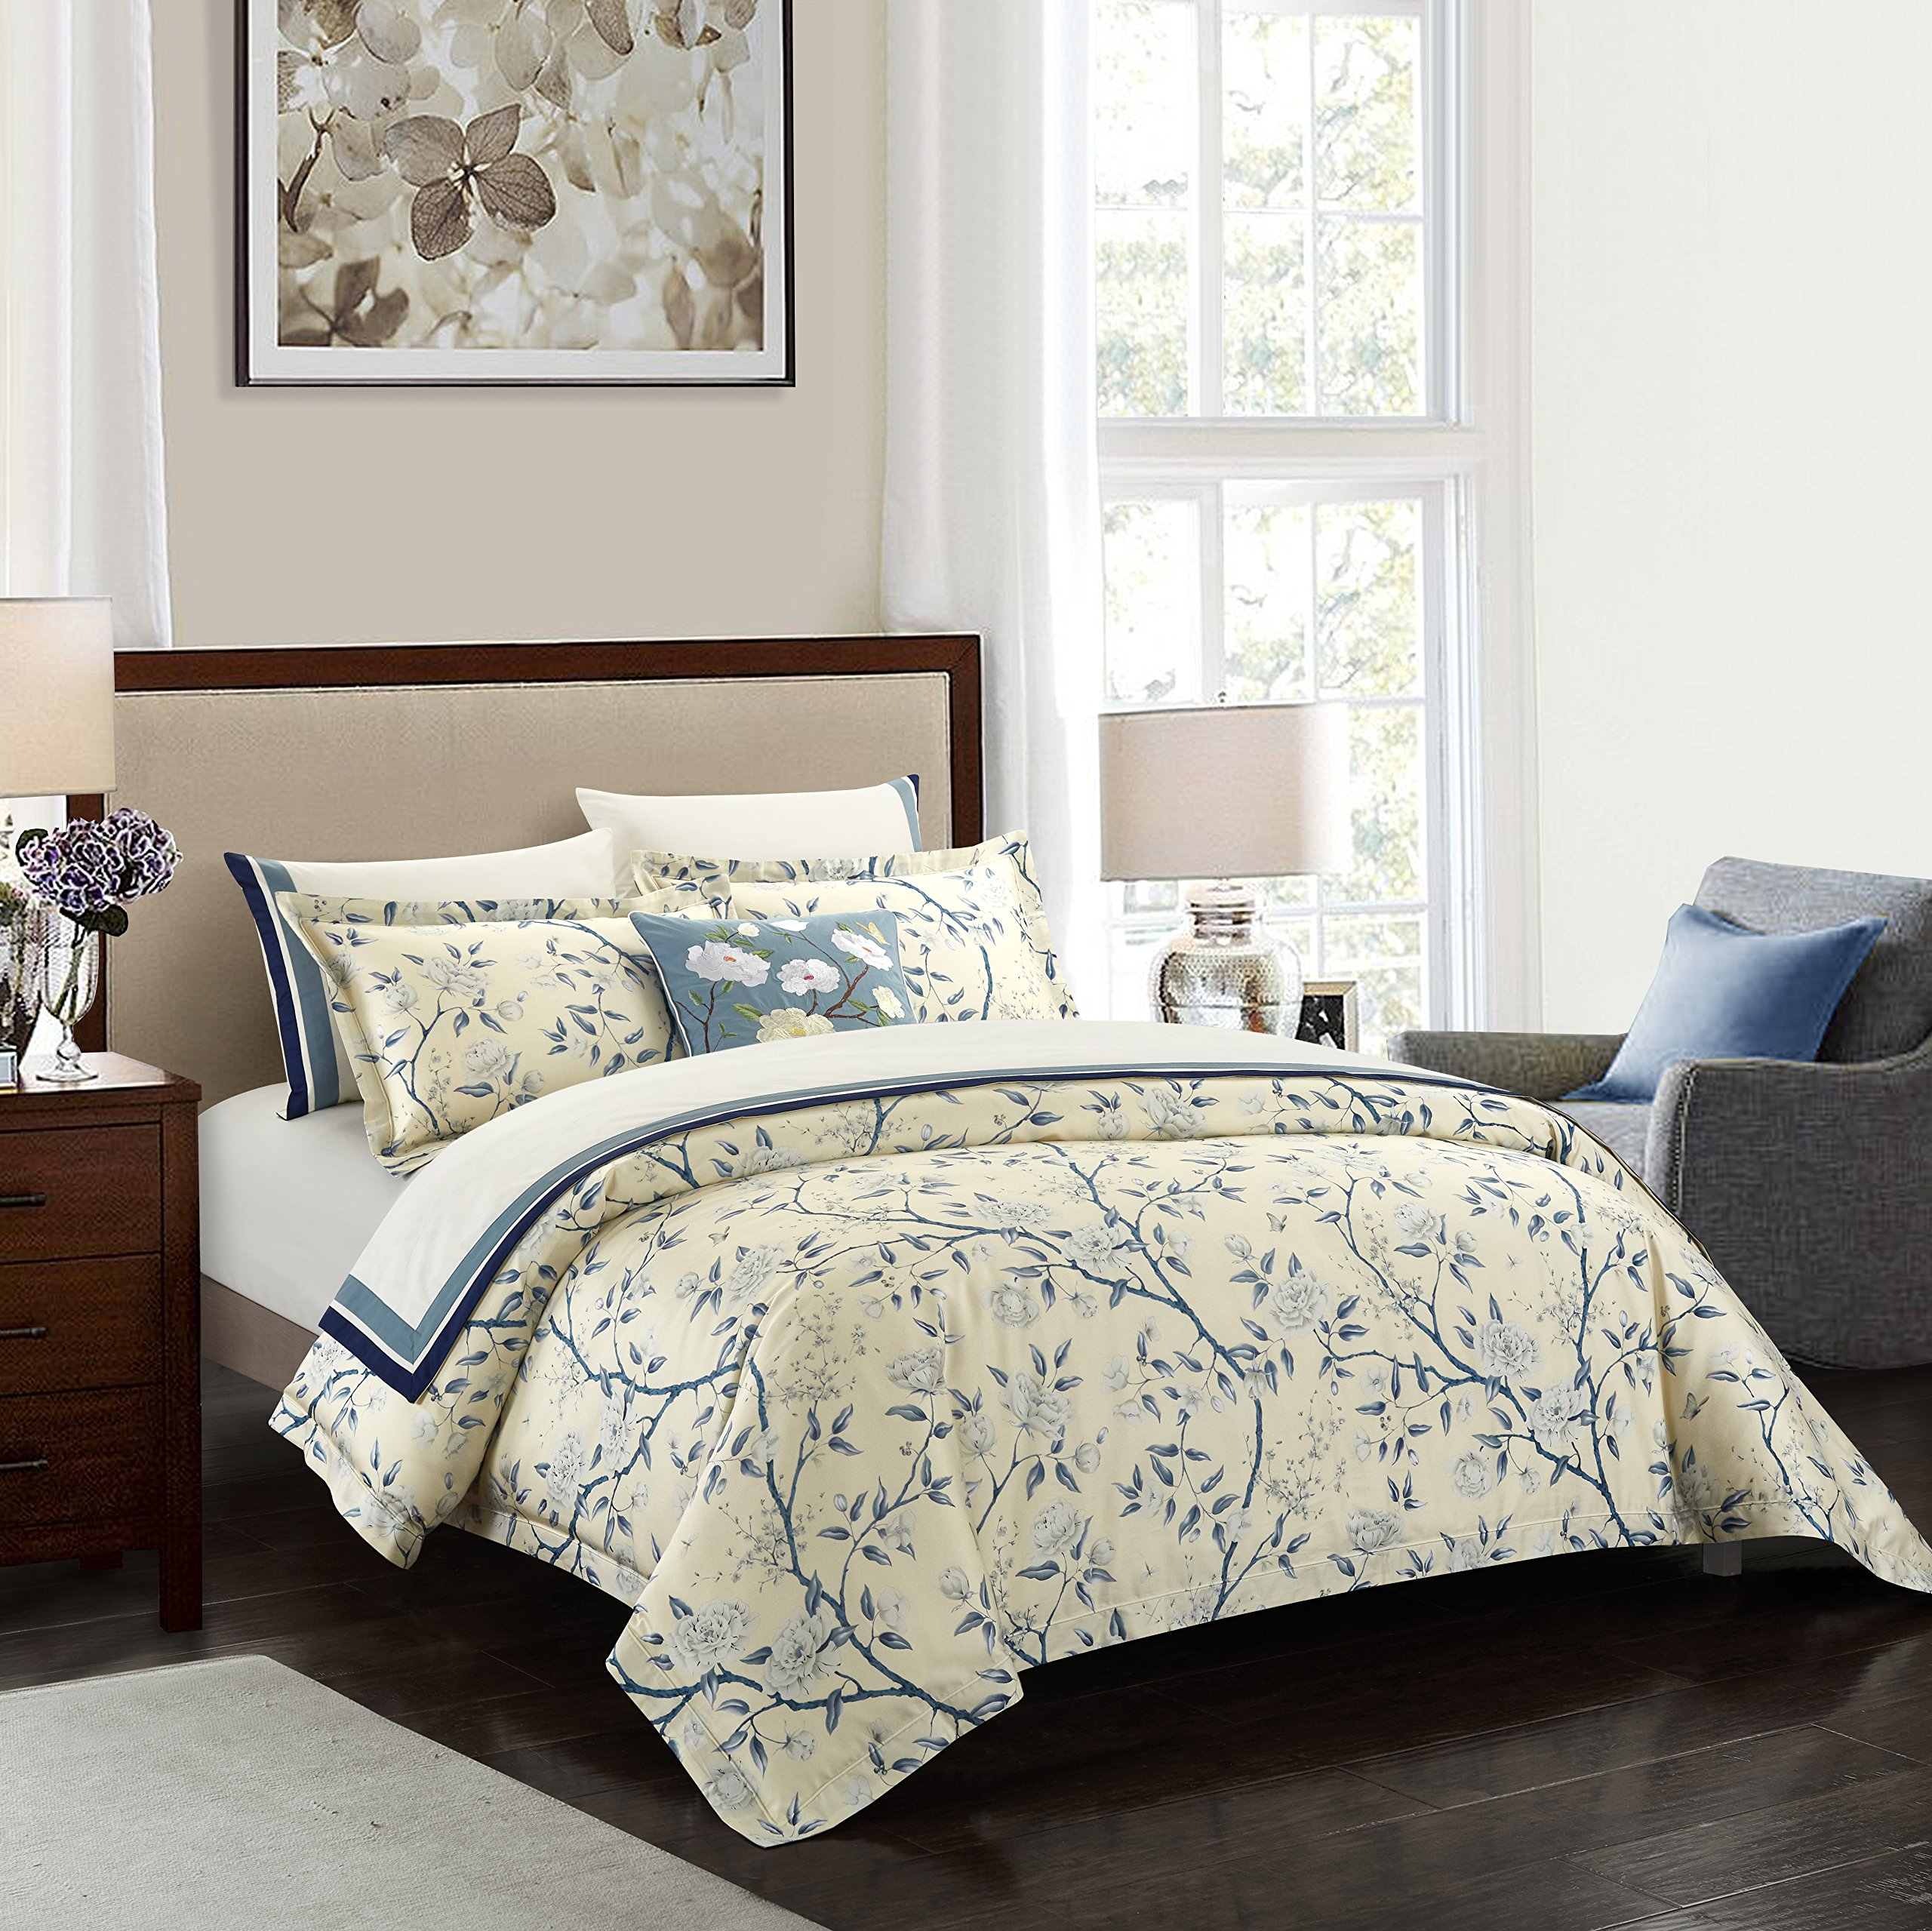 Casabolaj Blue&White Luxury Vintage Duvet Covers Set 3 Pieces Deluxe French Country Watercolor 100% Egyptian Cotton Sateen 400 Thread Count Button Closure and Corner Ties King Size